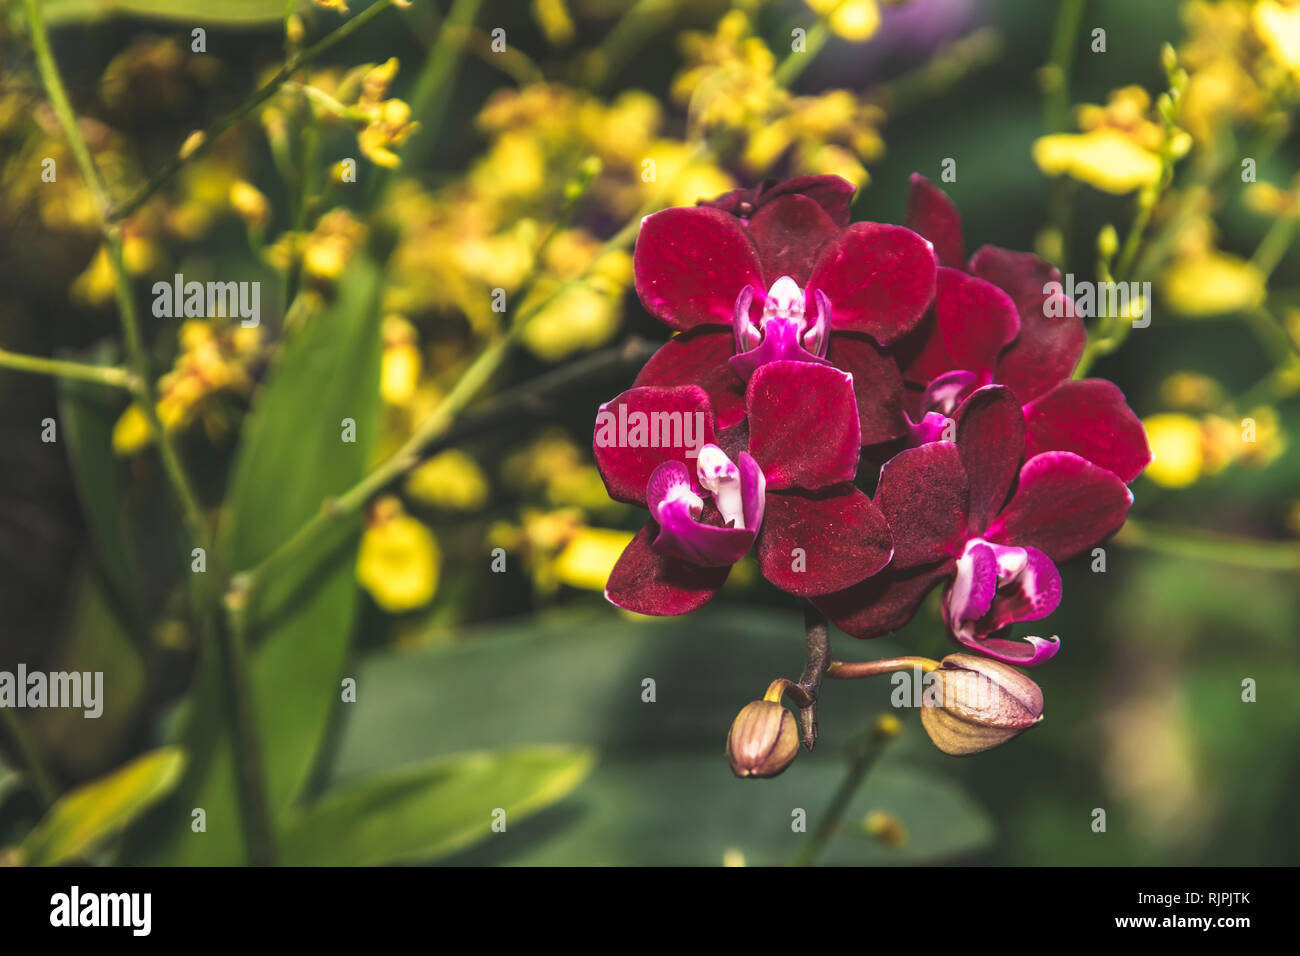 Orchid flower in full blossom close up details isolated blurred background in elegant muted colours - Stock Image